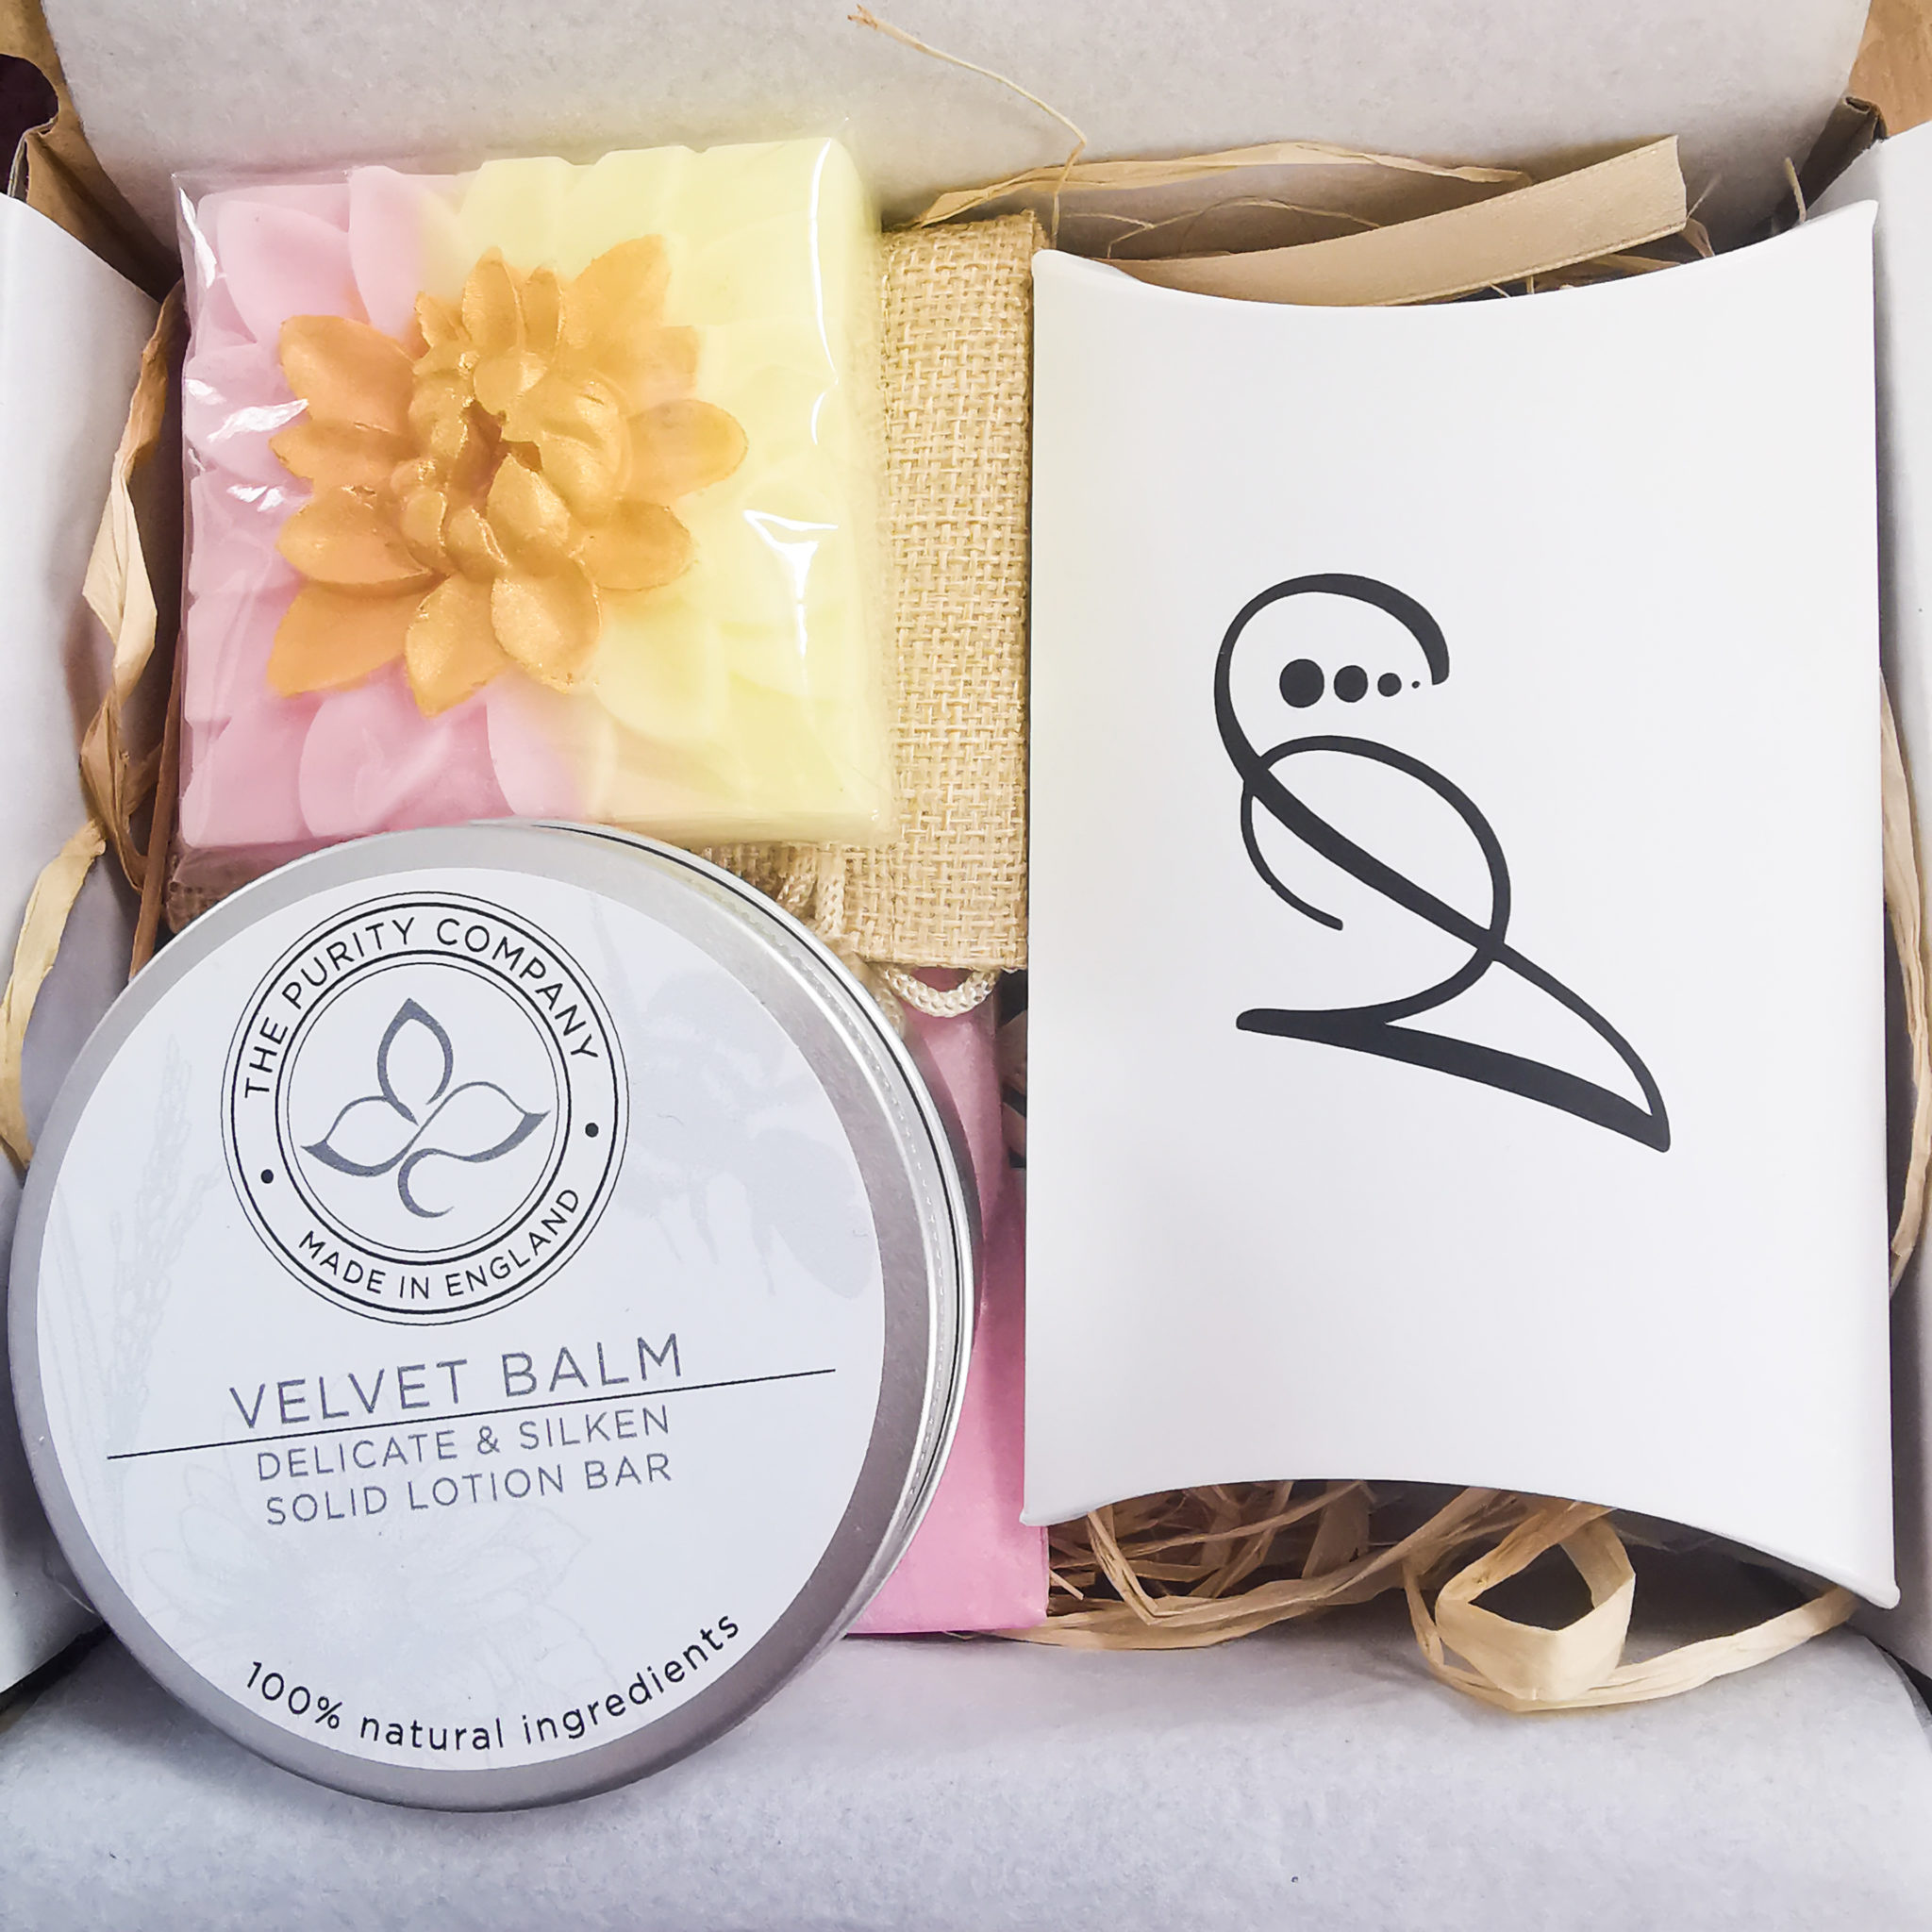 AccentsUK Adore You boxes - May 2020 Lockdown Love